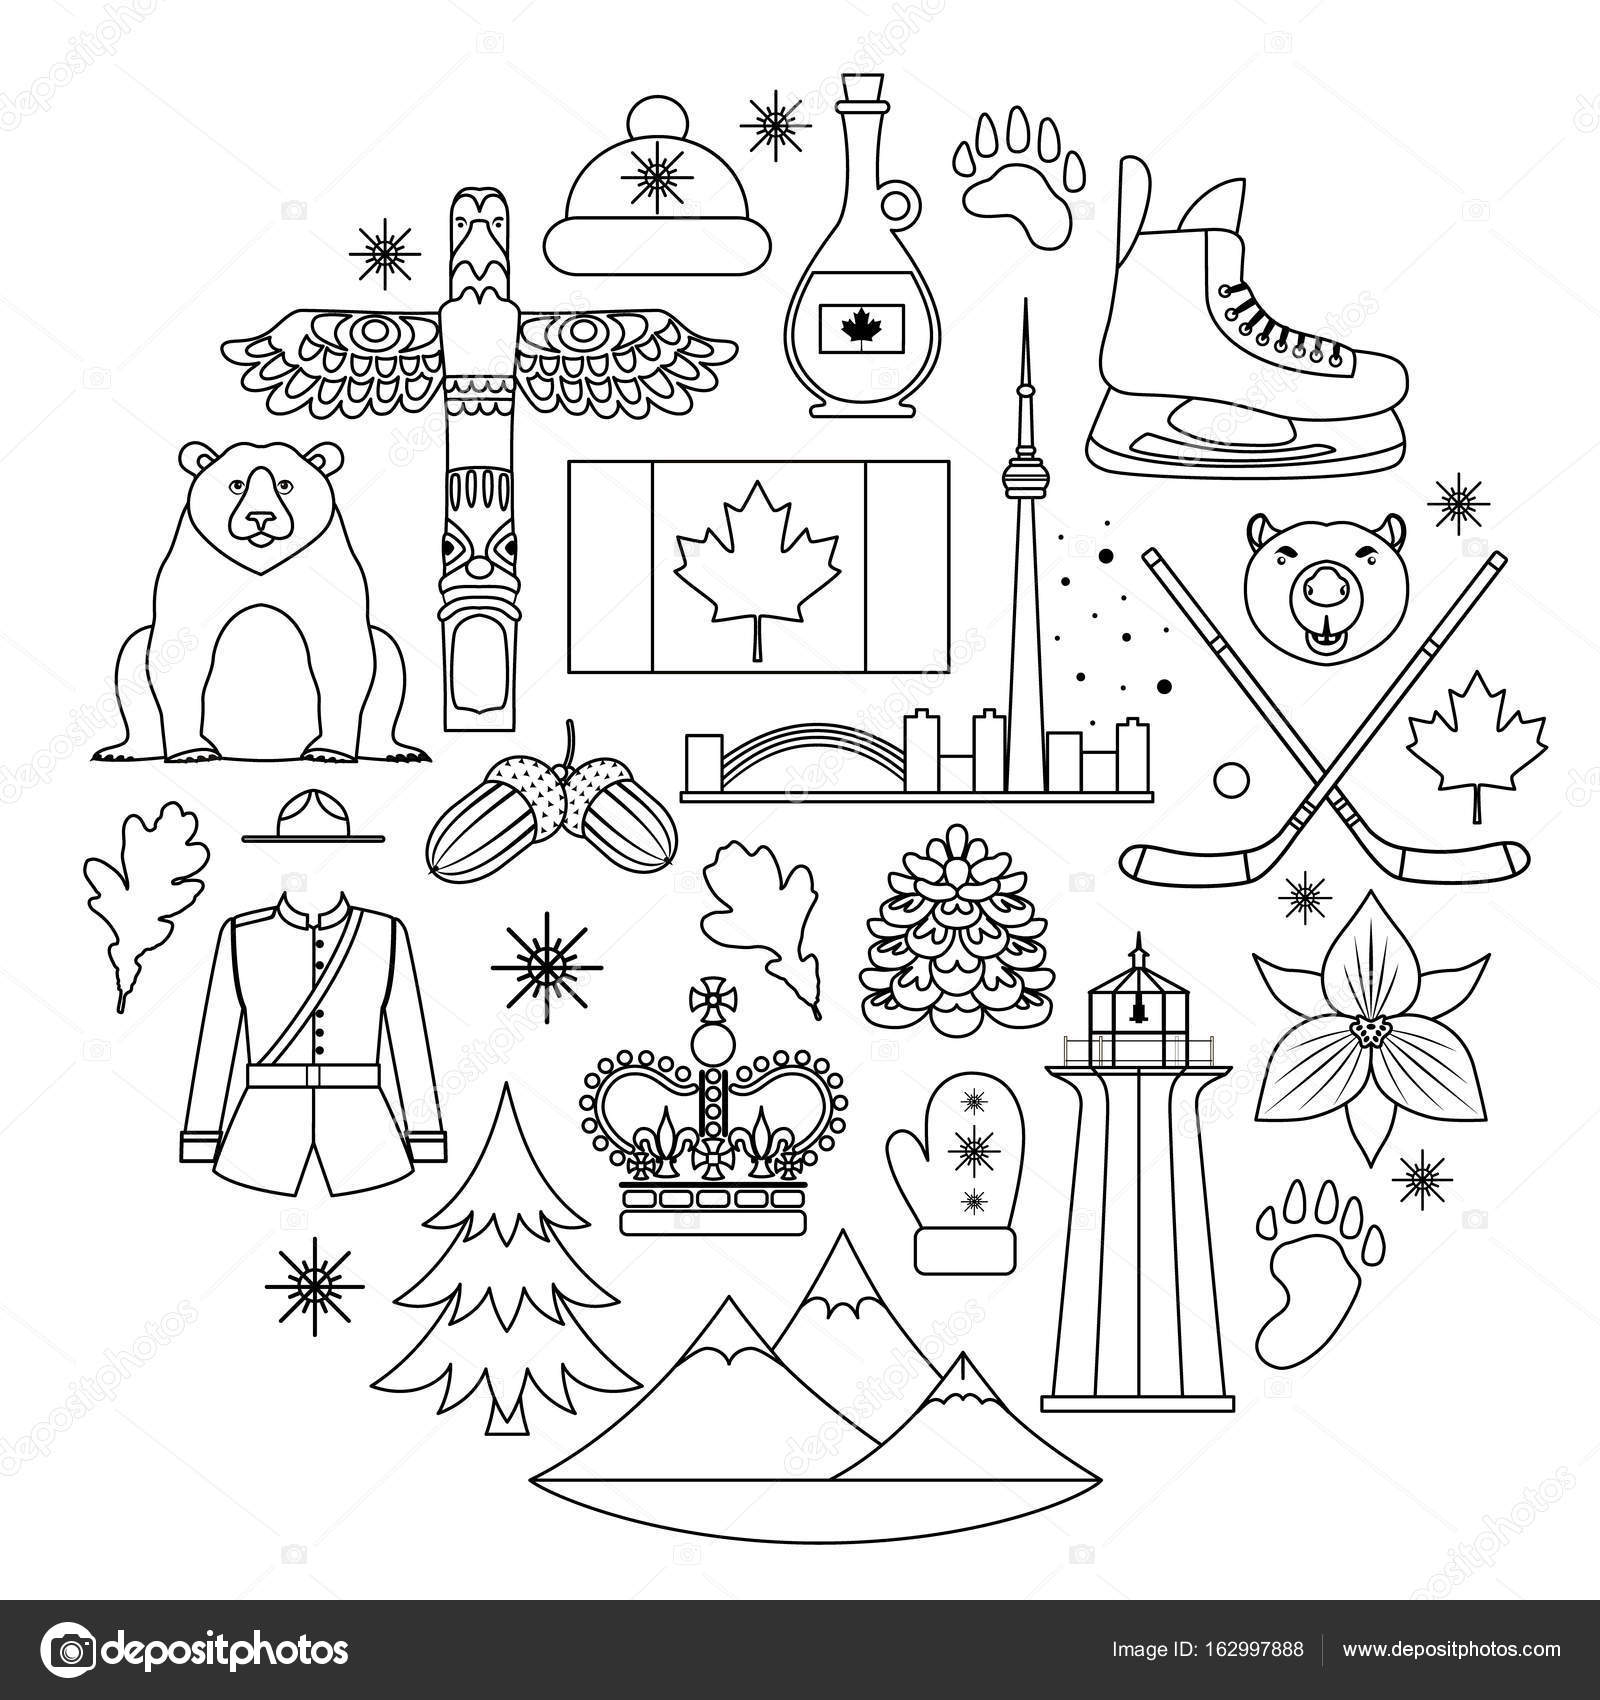 National symbols of canada in the lining style vector stock national symbols of canada in the lining style vector stock vector ccuart Choice Image